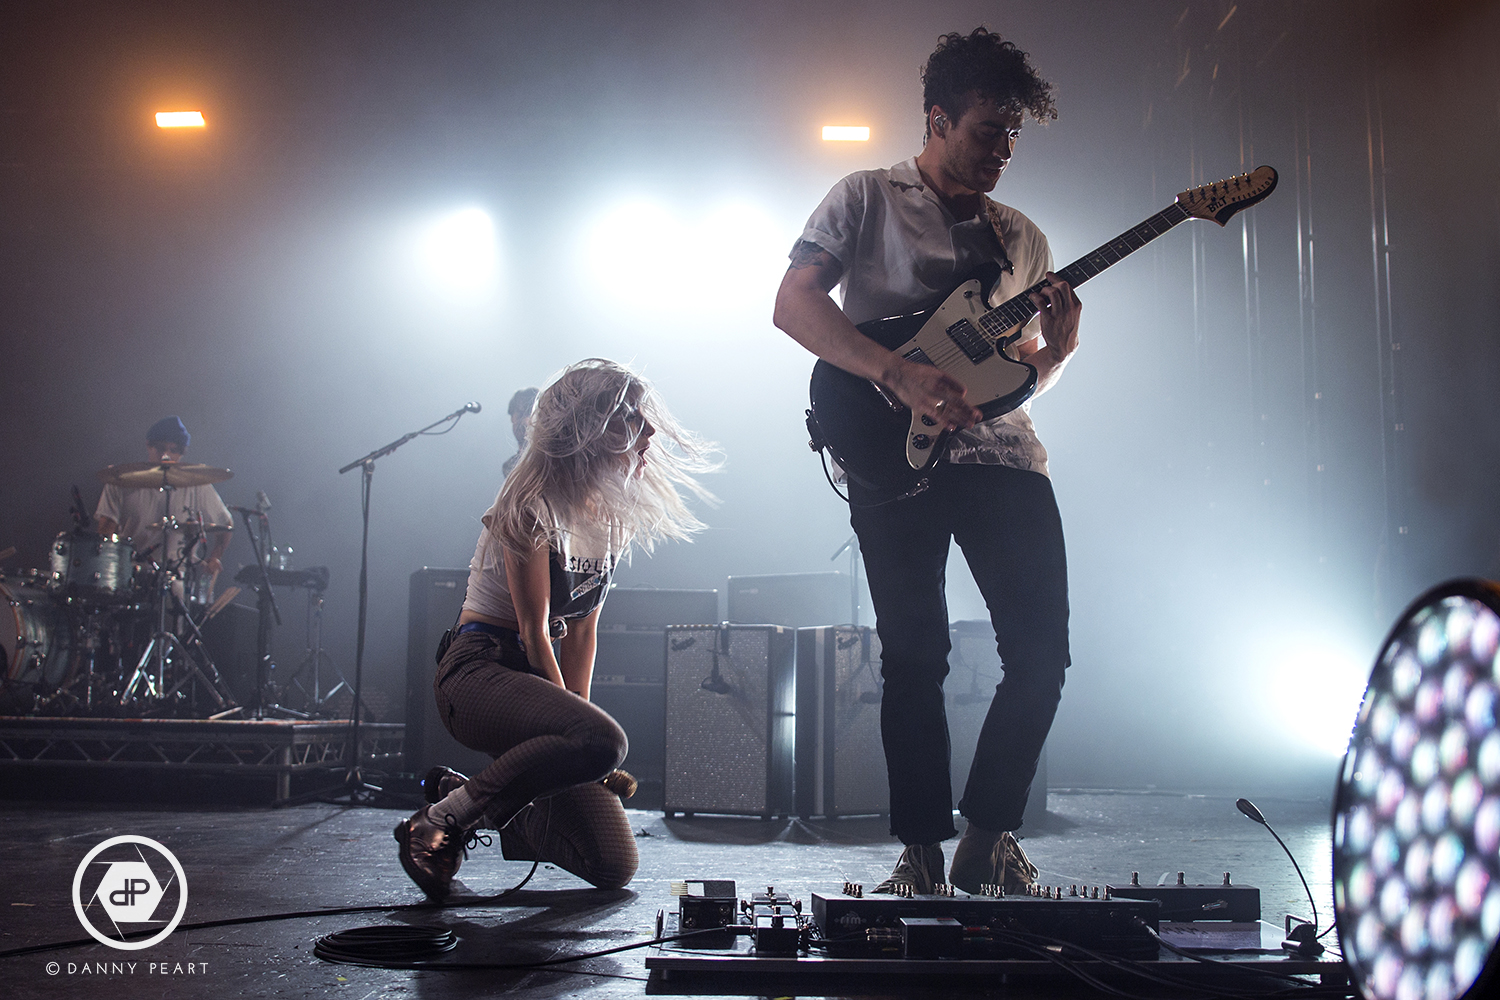 Paramore and Manchester shine bright through the hard times